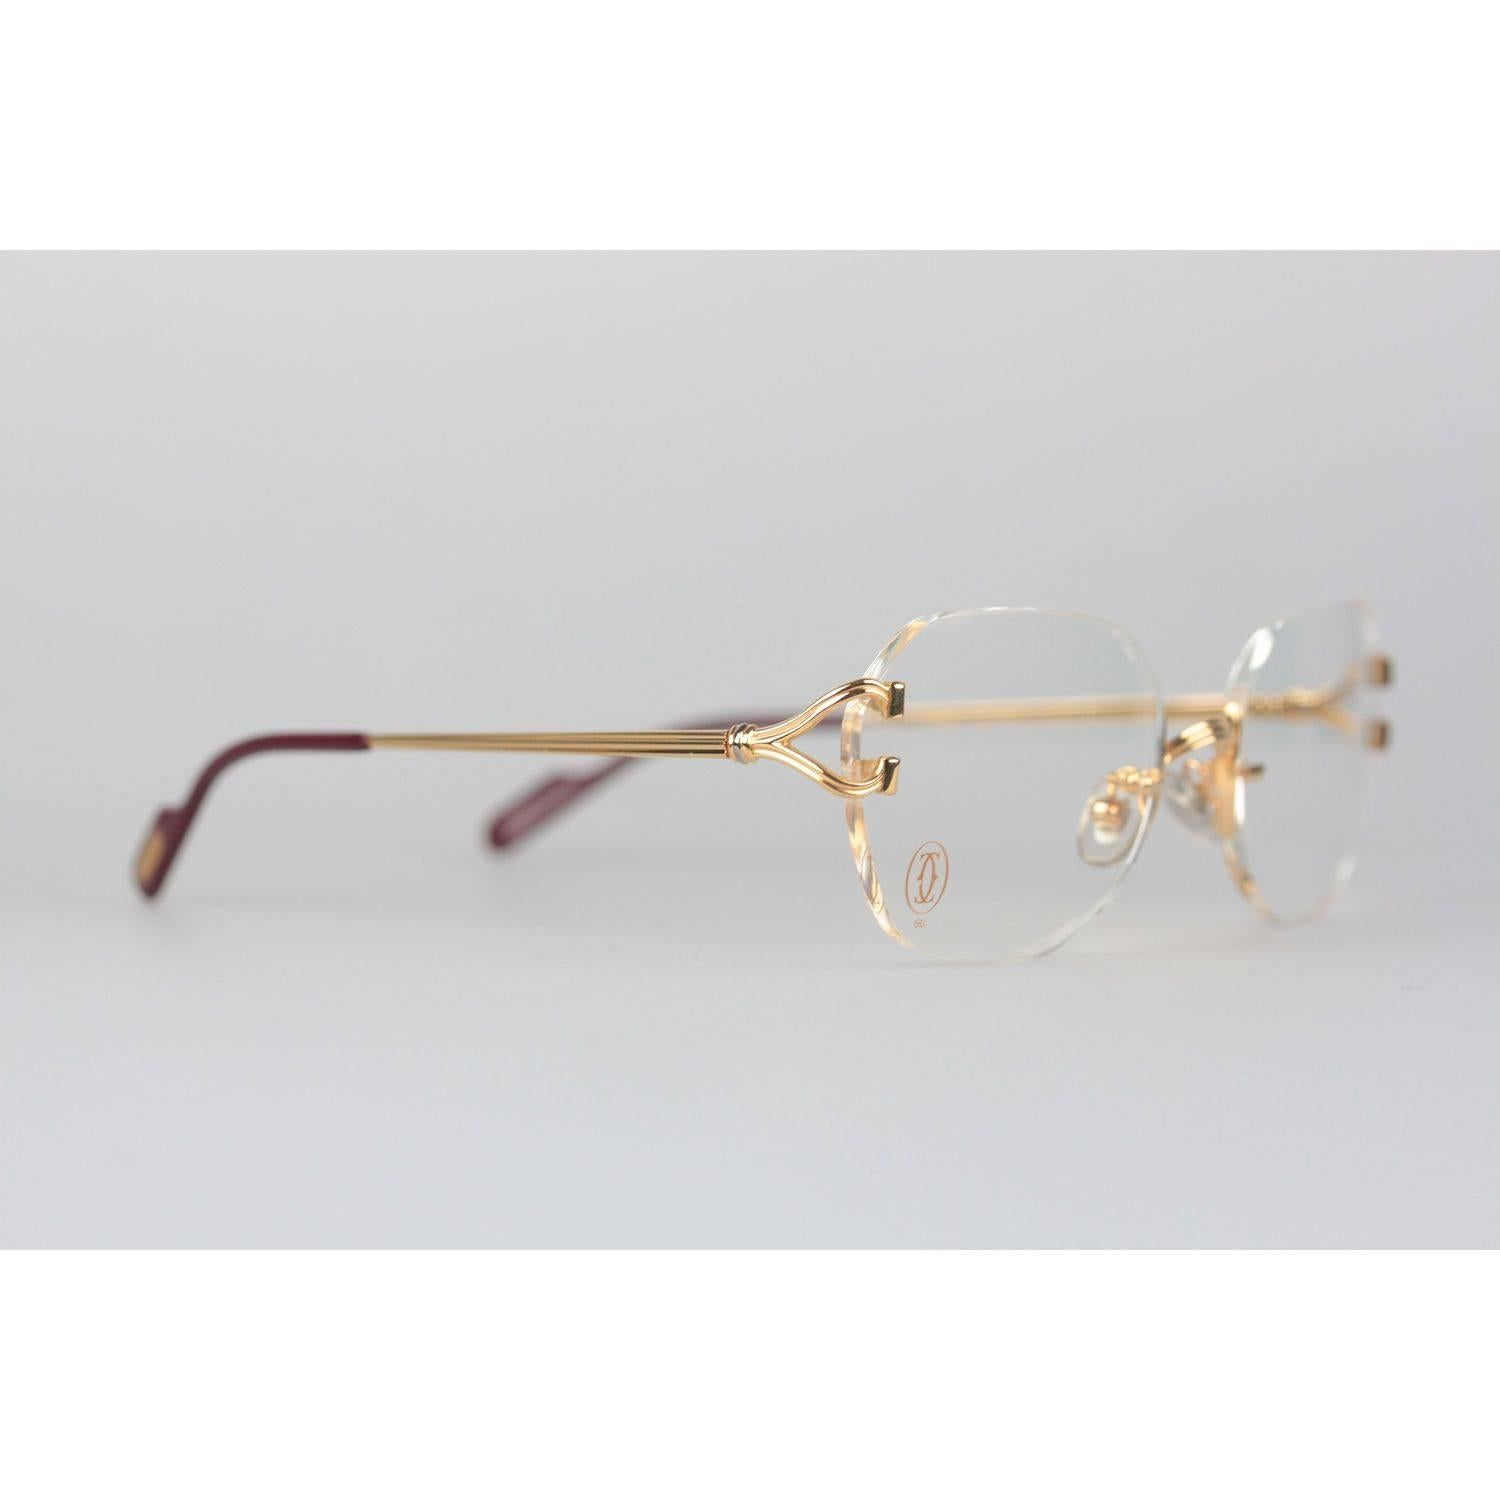 45ede2ebb13 CARTIER Paris Vintage Eyeglasses CHELSEA Gold Rimless Frame 130 Nos For  Sale at 1stdibs